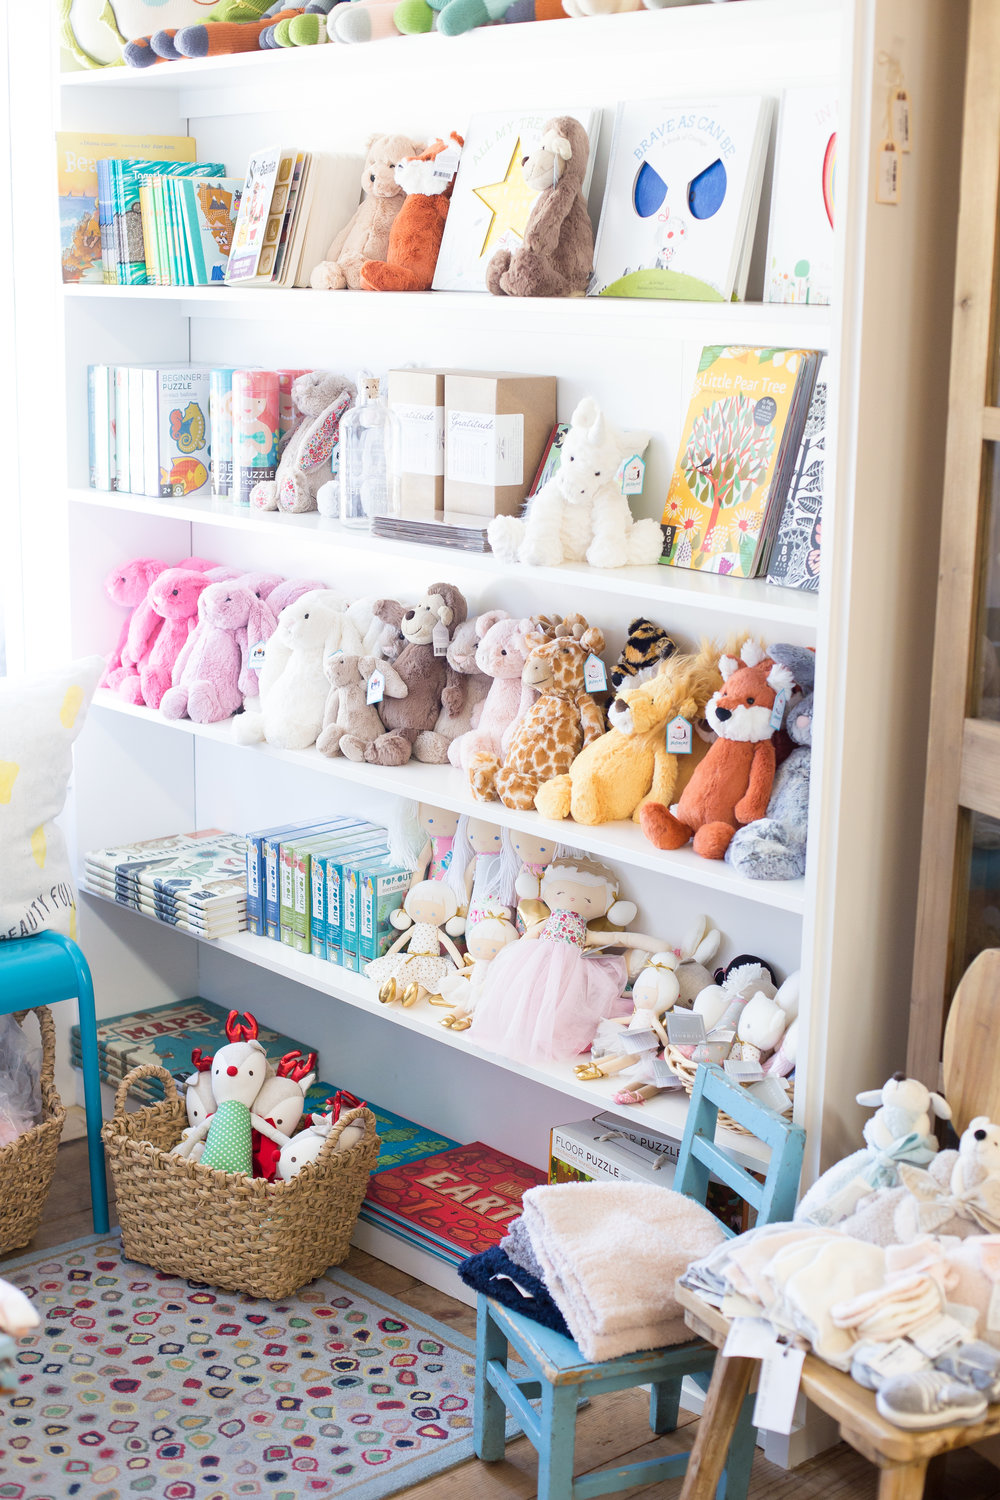 Children's books, baby books, luxury plush stuffed animals